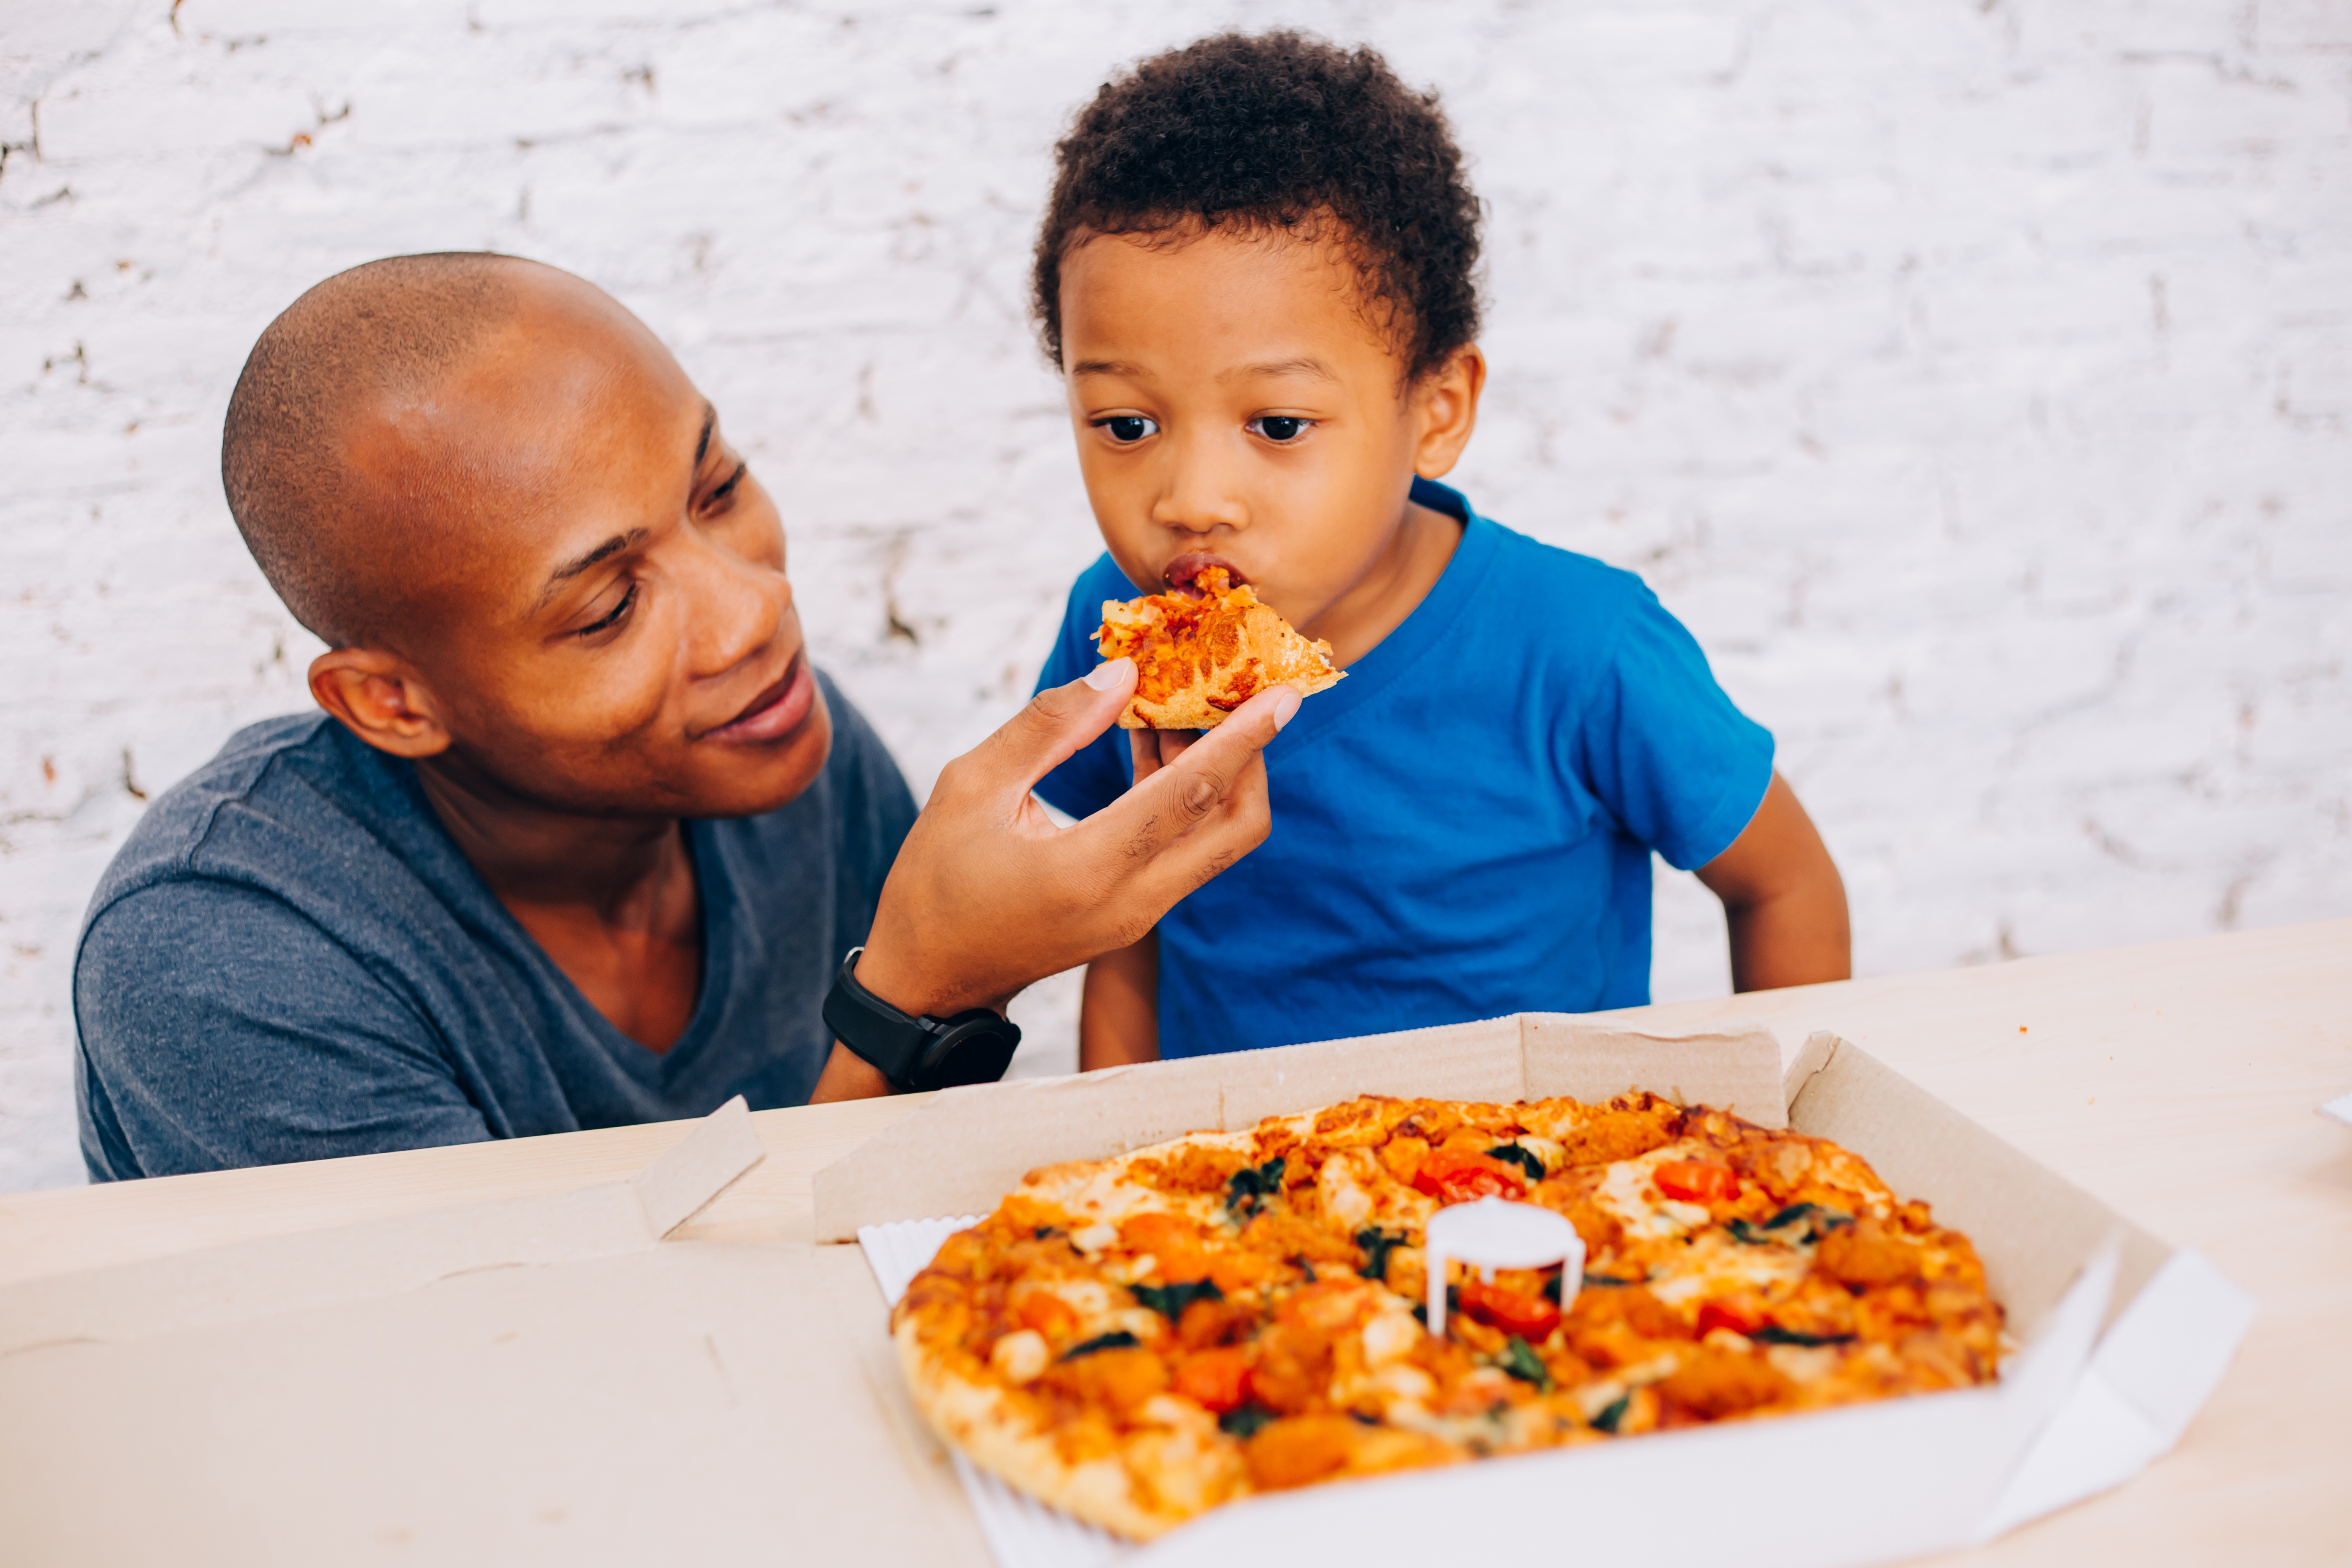 father feeding pizza to son